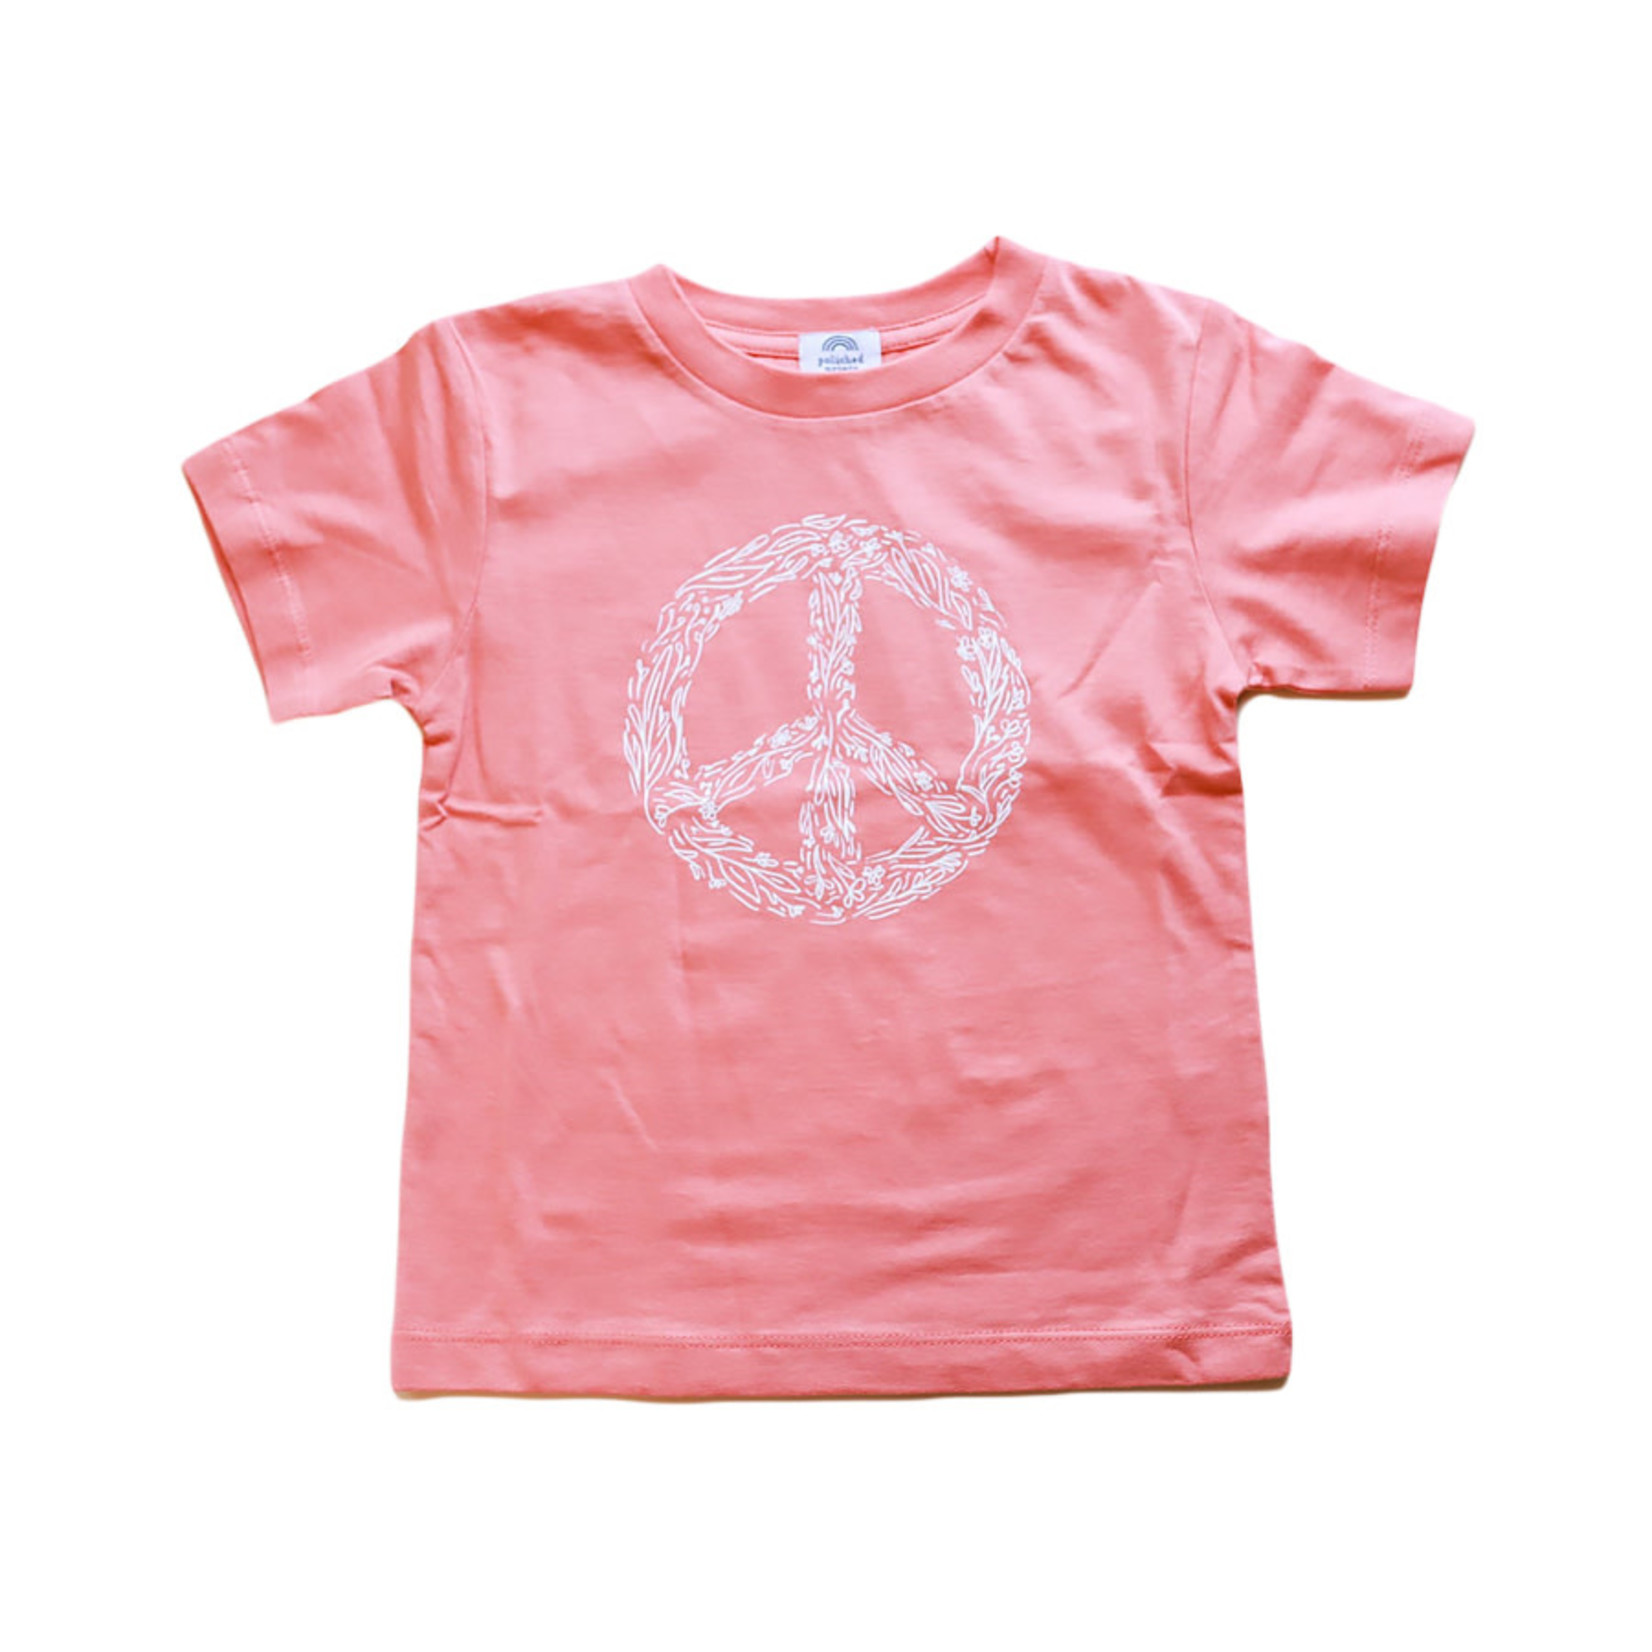 Polished Prints Peace Floral Toddler Tee